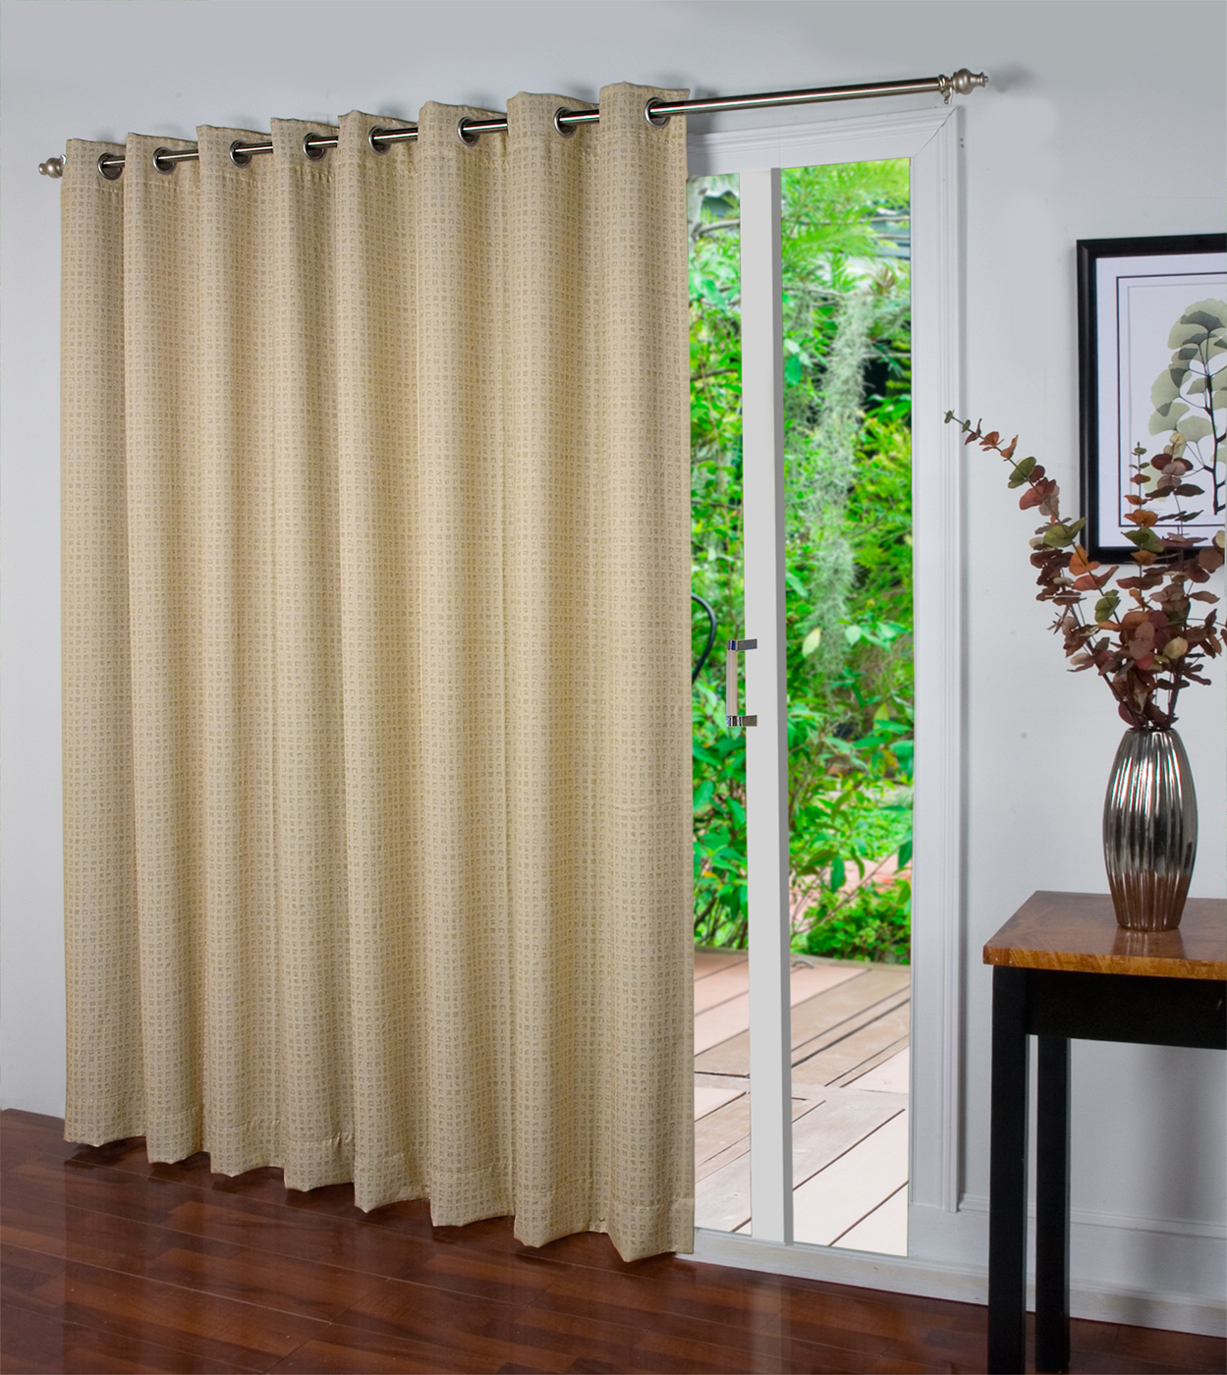 patio door curtains also patio door blackout curtain panel also curtain exchange also decorating ideas sliding glass door curtains